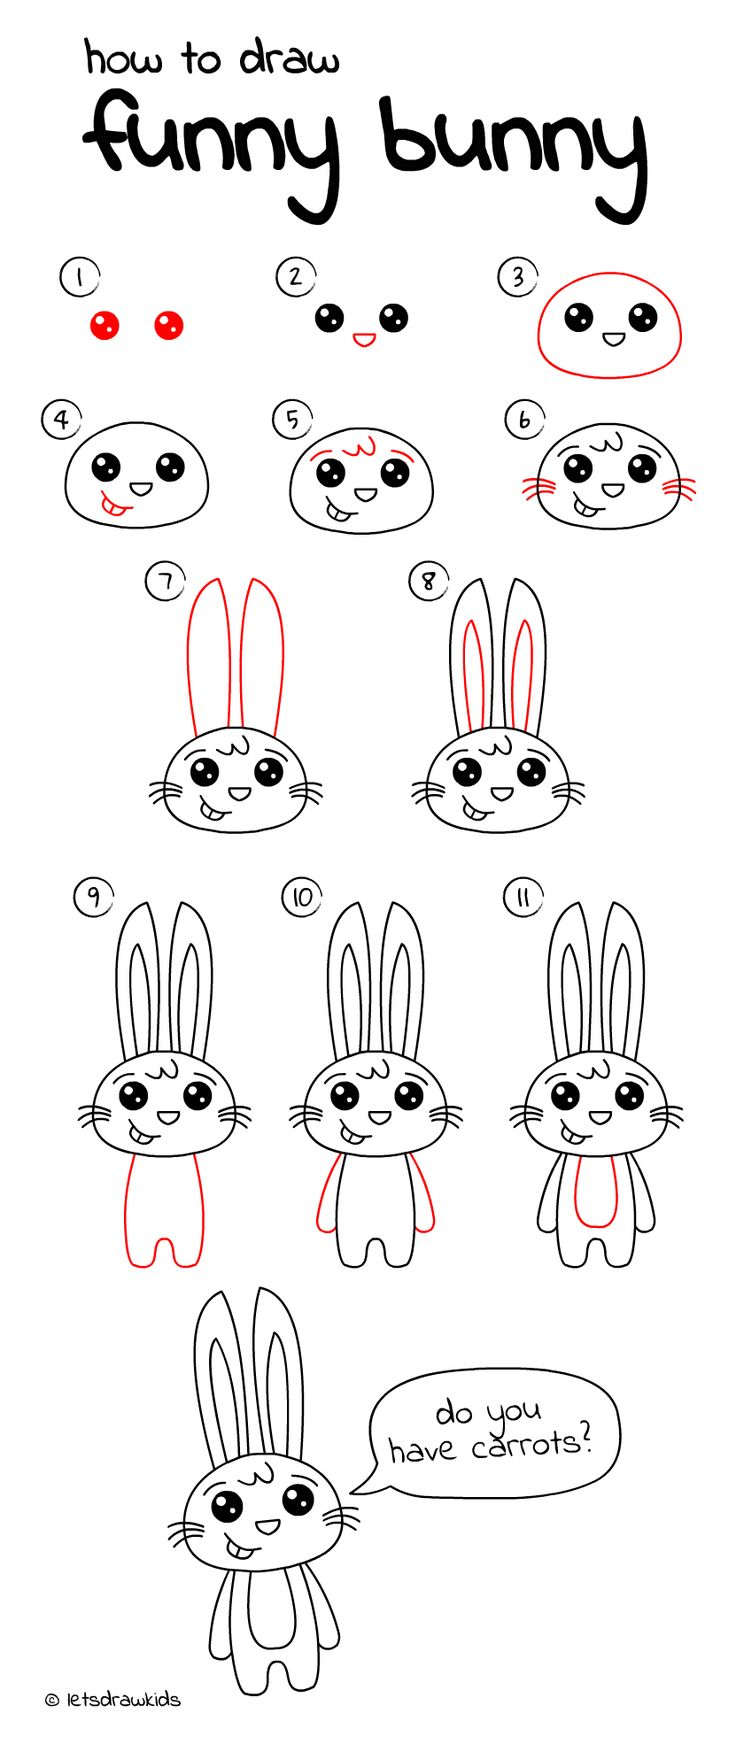 easy drawing step by step perfect for kids - Images Of Drawings For Kids